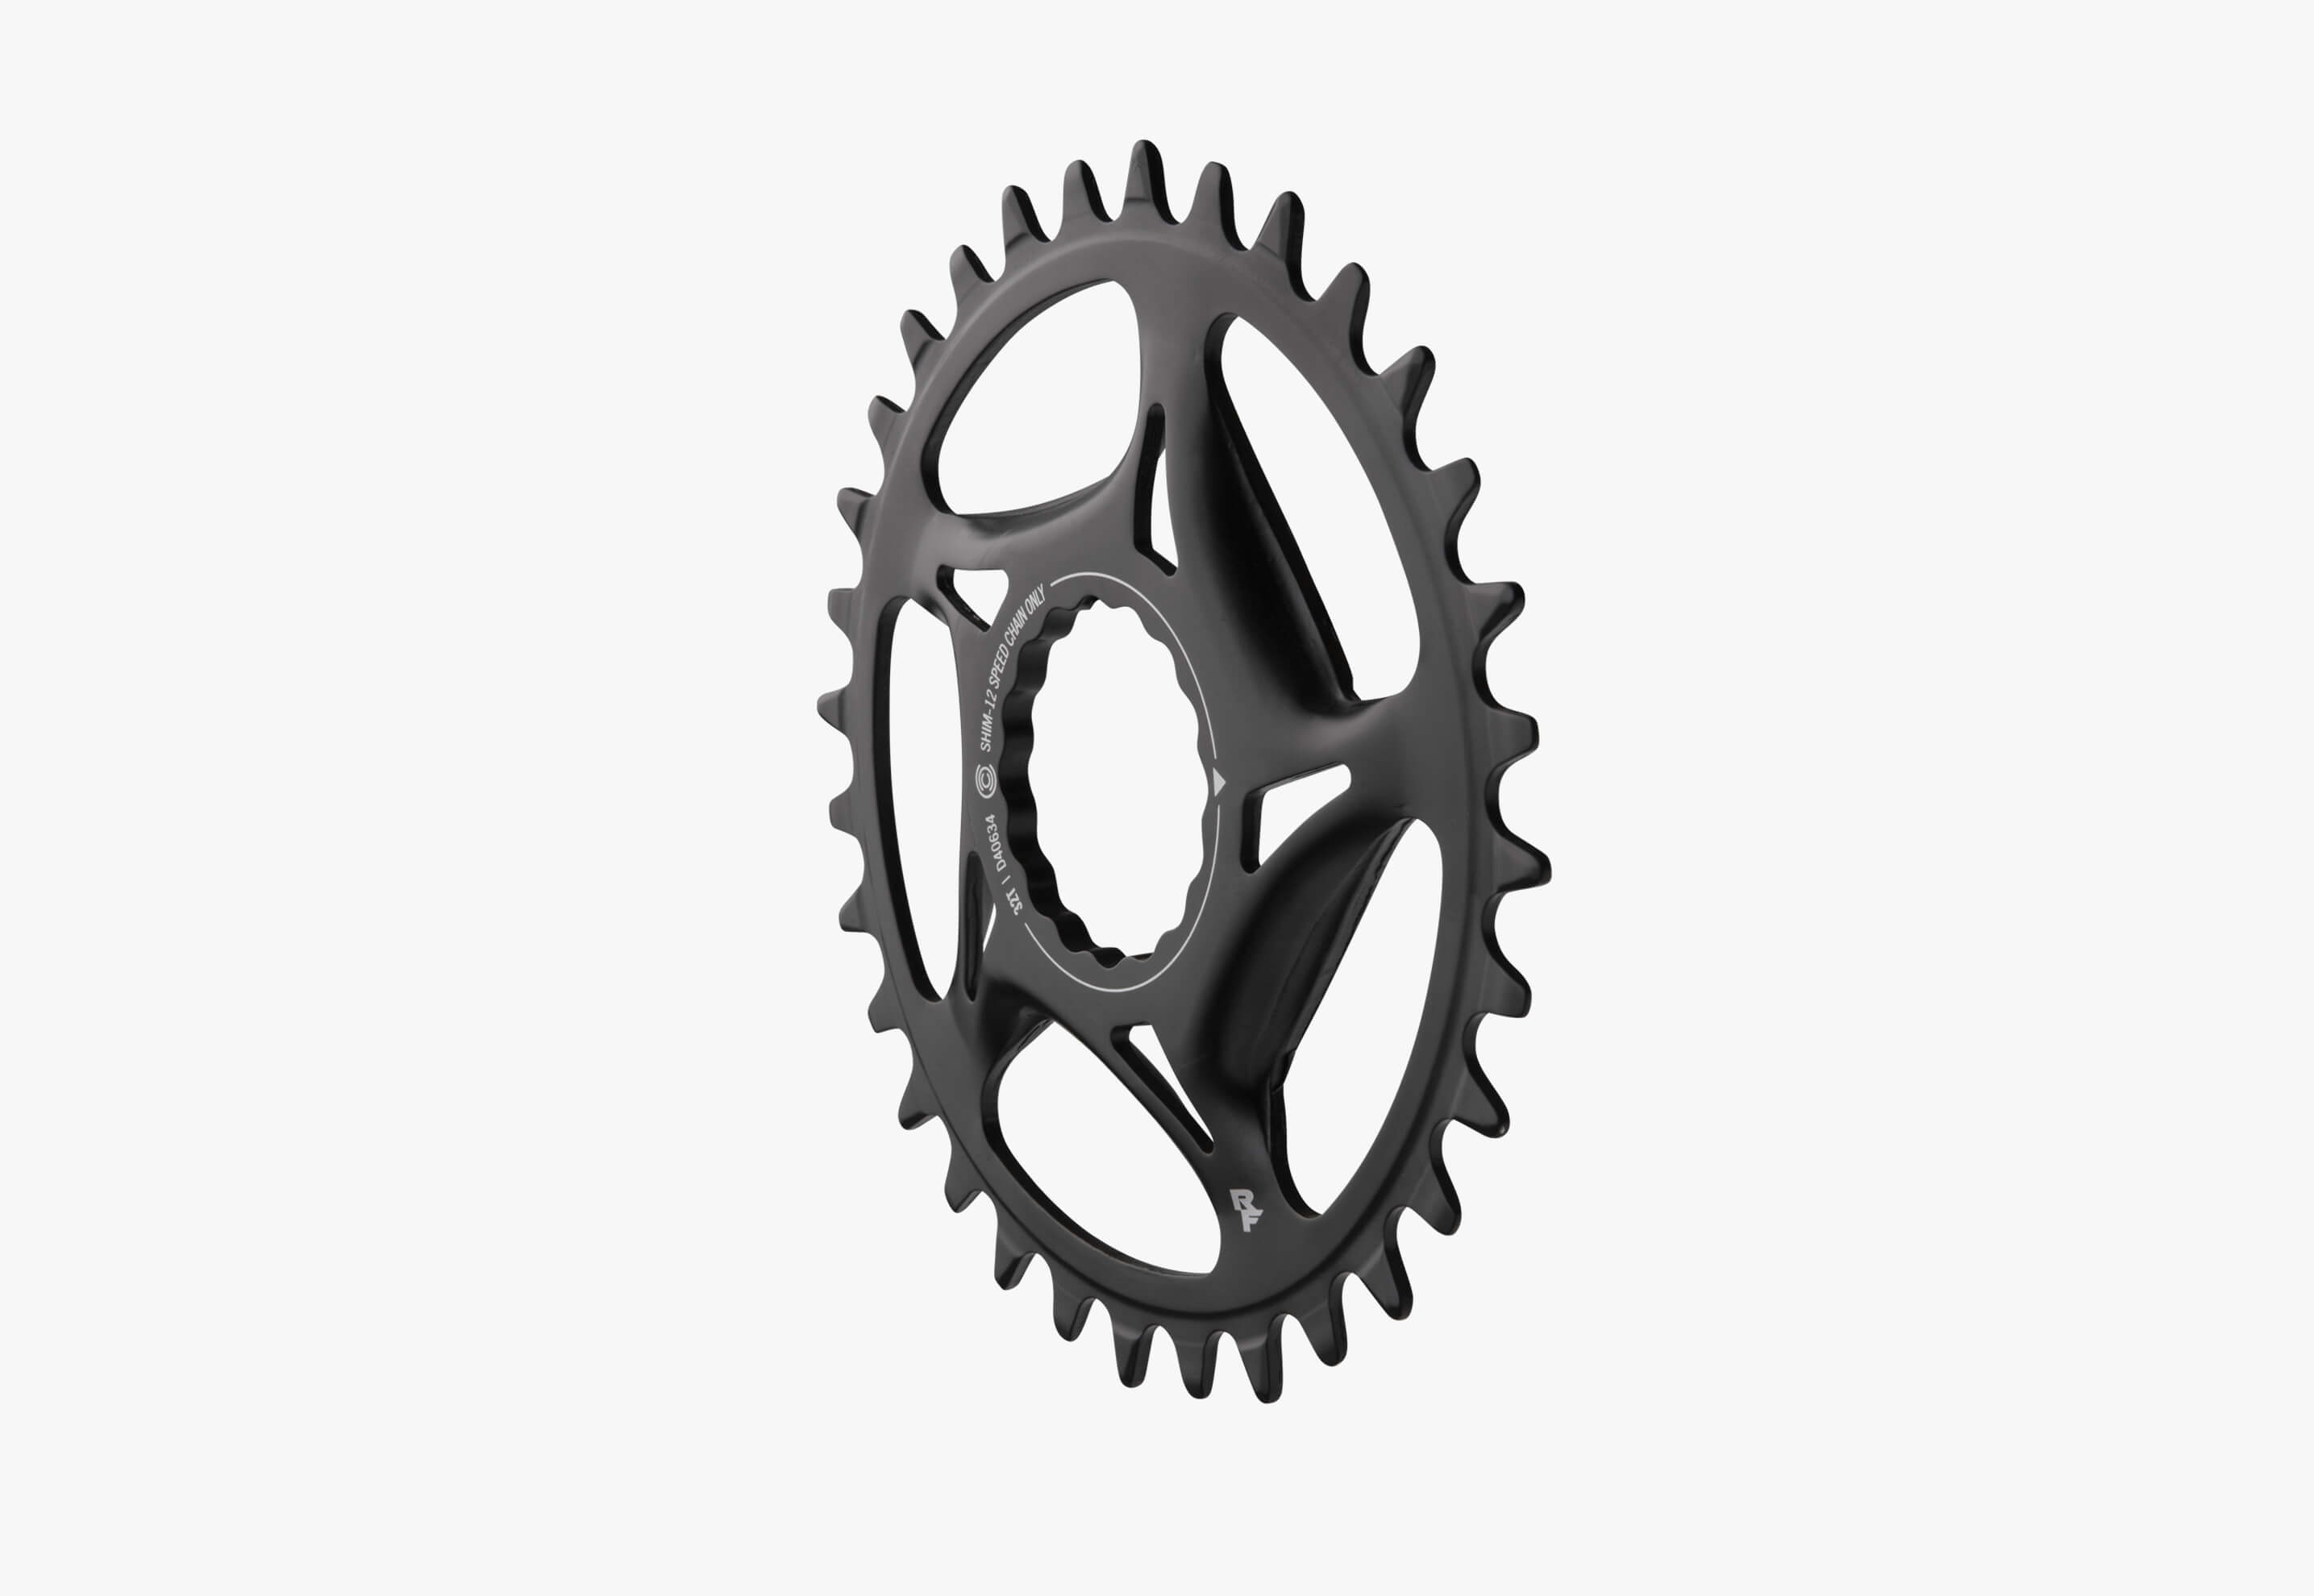 1x Chainring, Cinch Direct Mount, Steel, SHI-12